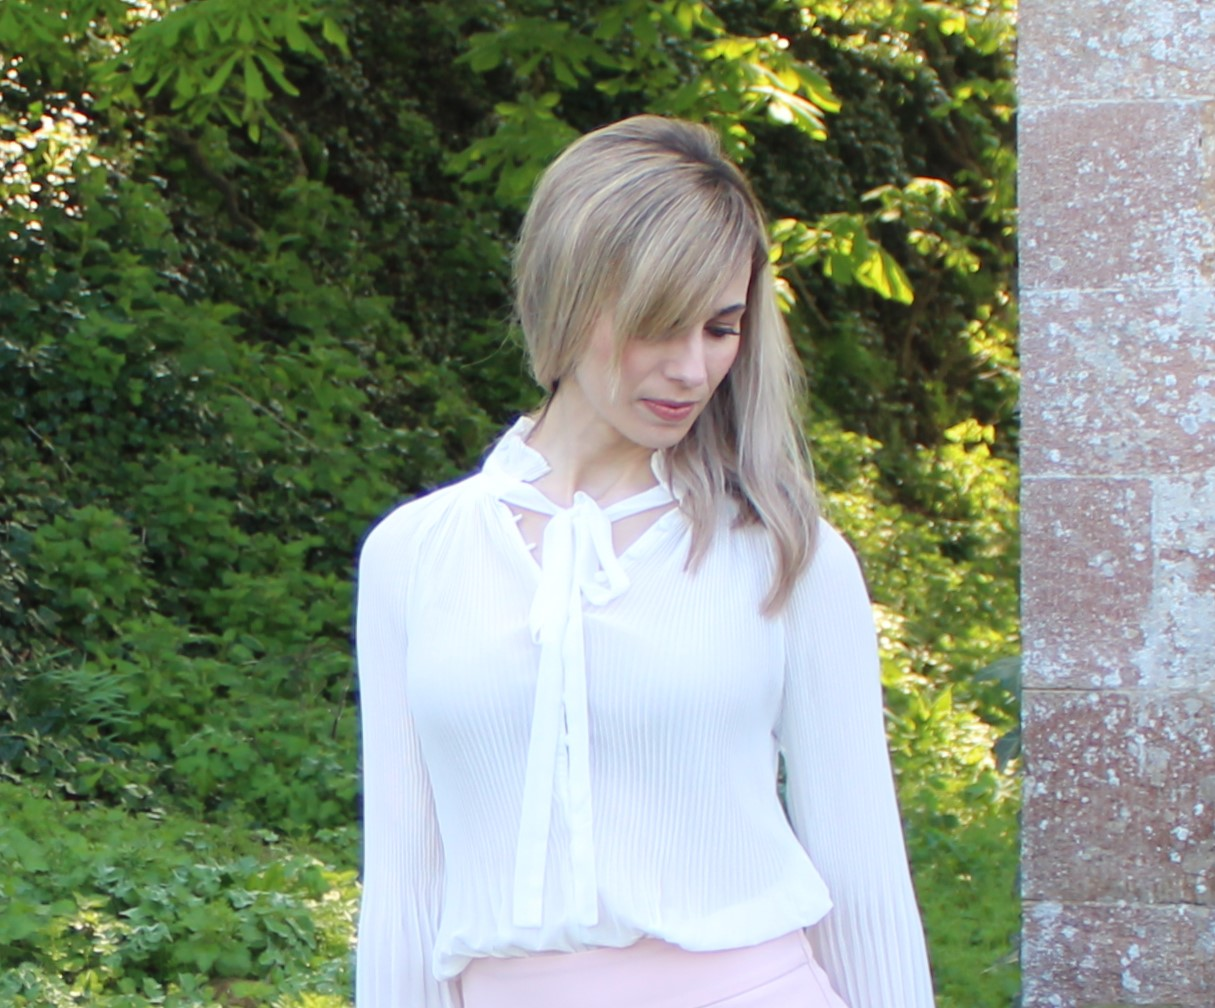 Blush Pink OOTD featuring Zara culottes - 3